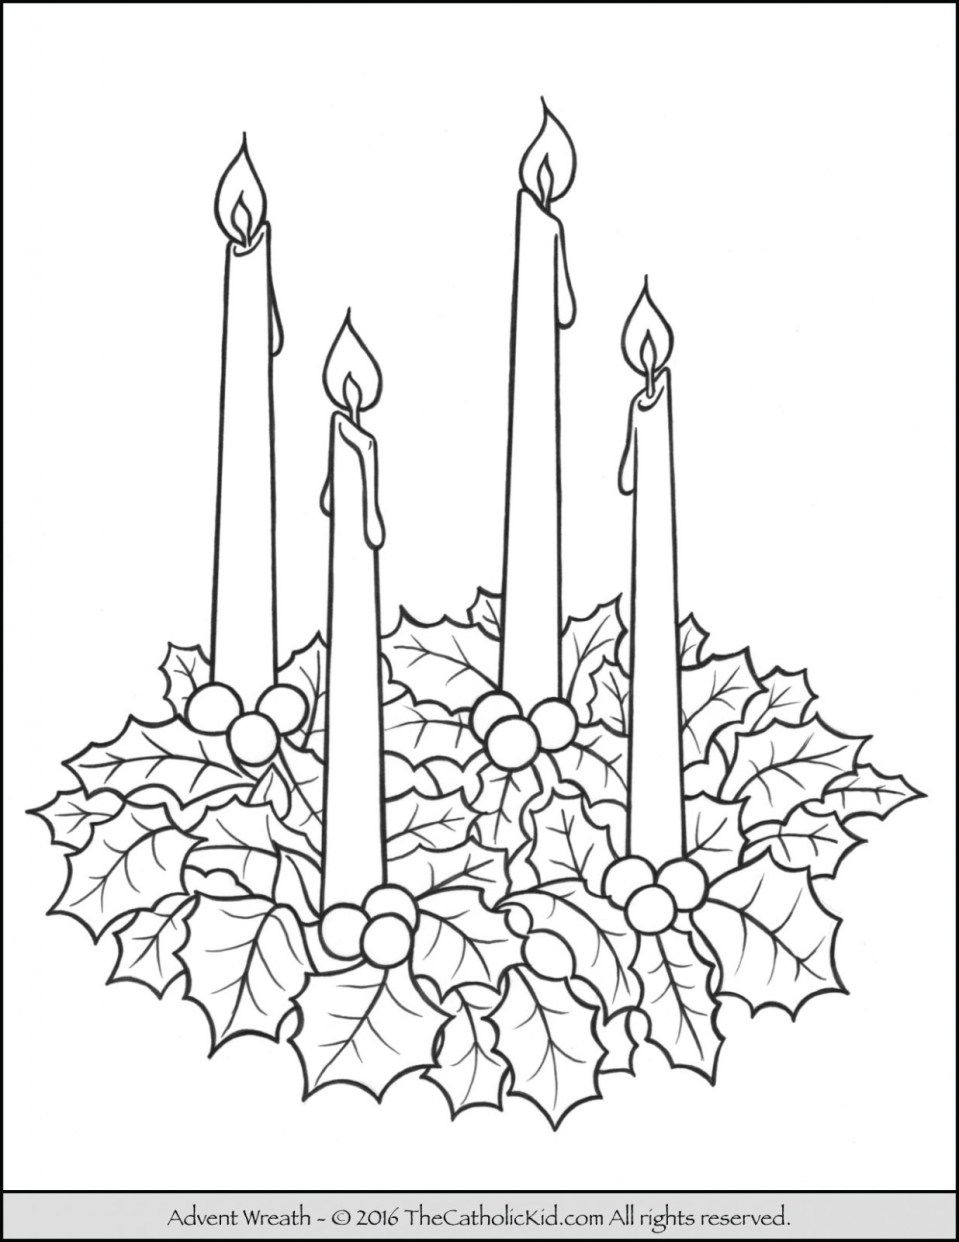 16 Advent Wreath Colouring Page Advent Coloring Christmas Advent Wreath Preschool Christmas